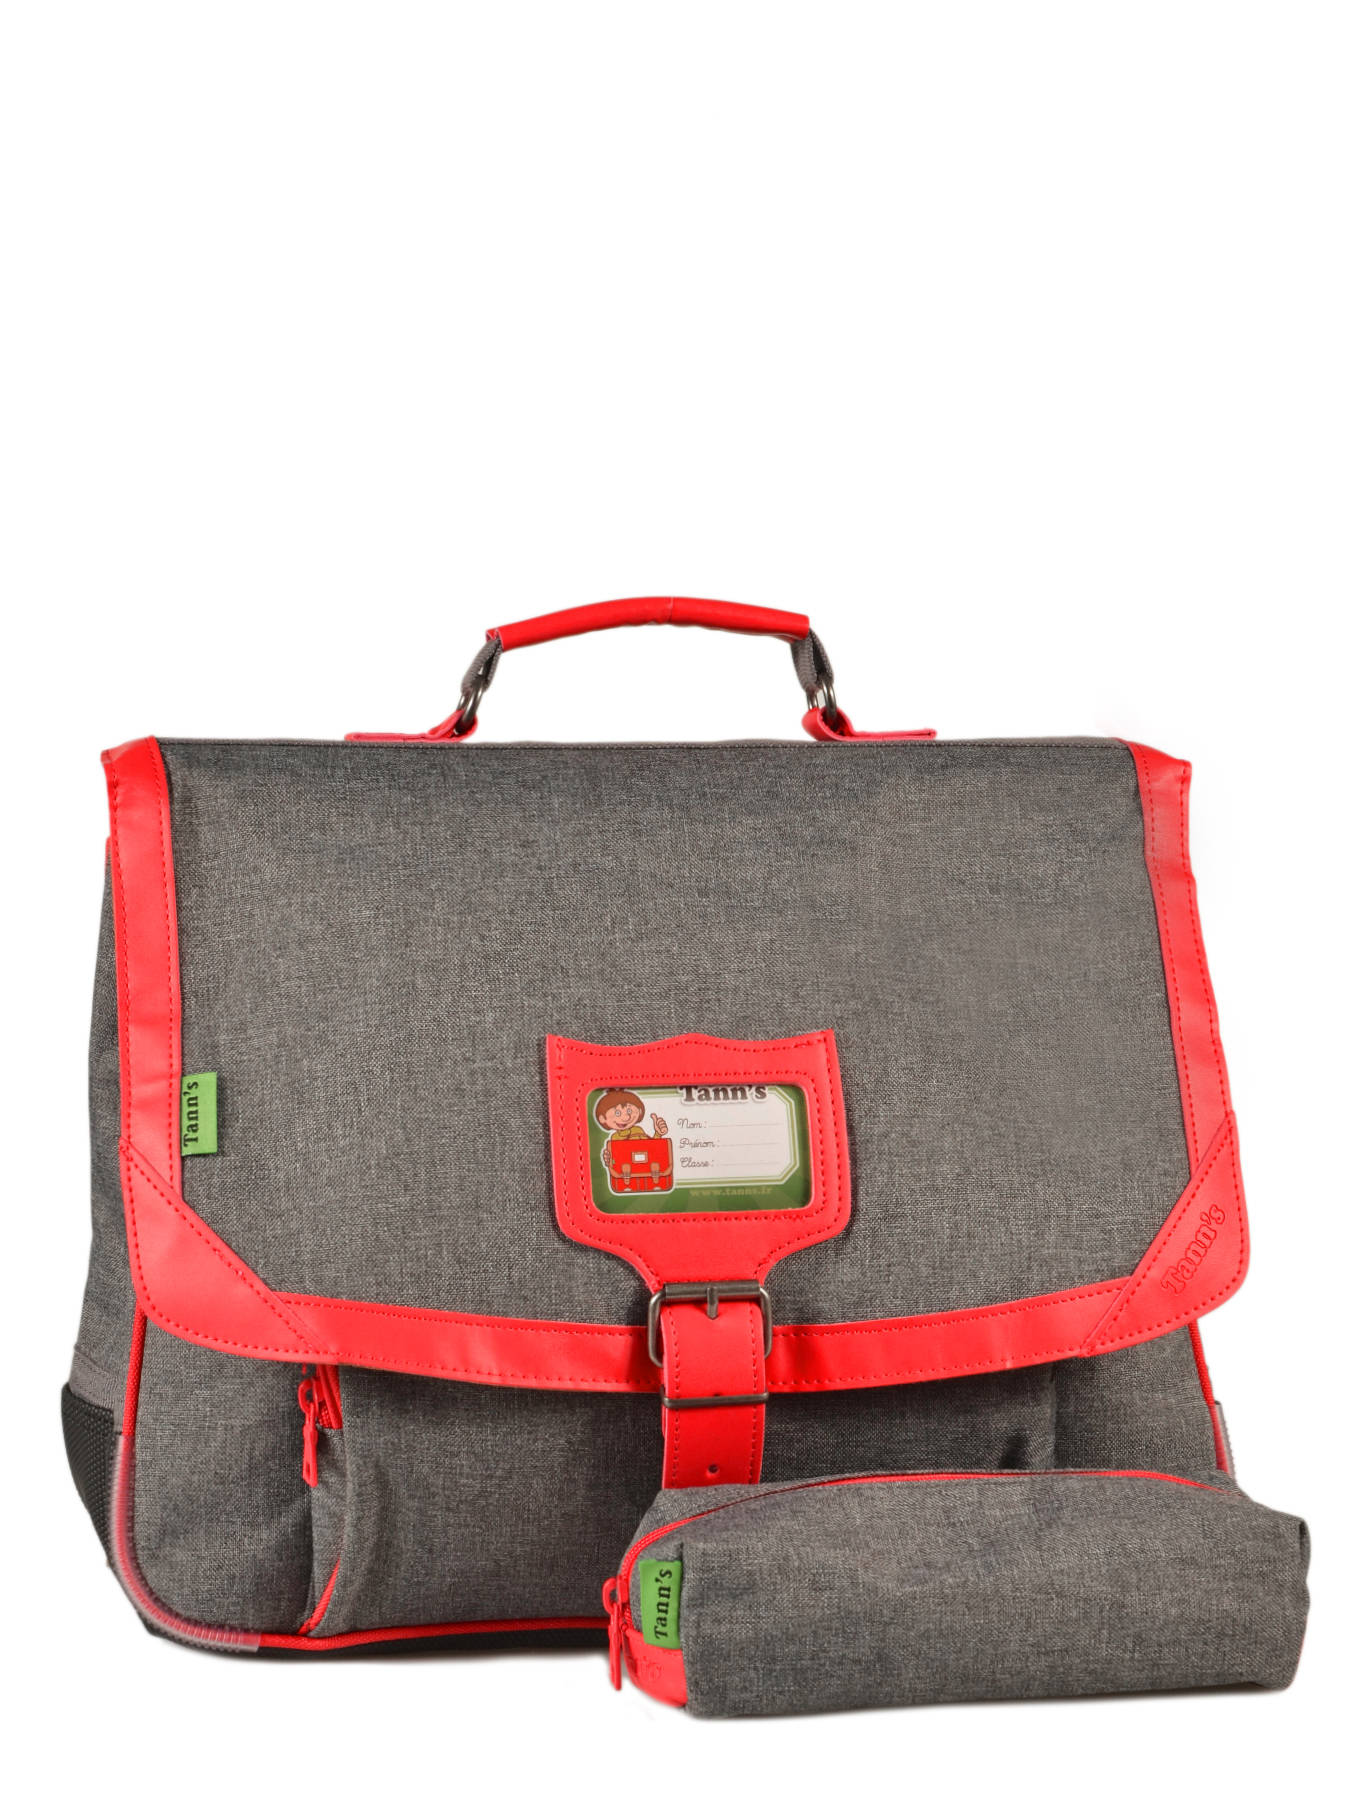 Cartable Tann's Chiné 38 cm CP/CE1 Chiné/Bleu Rouge gris PJBInEd